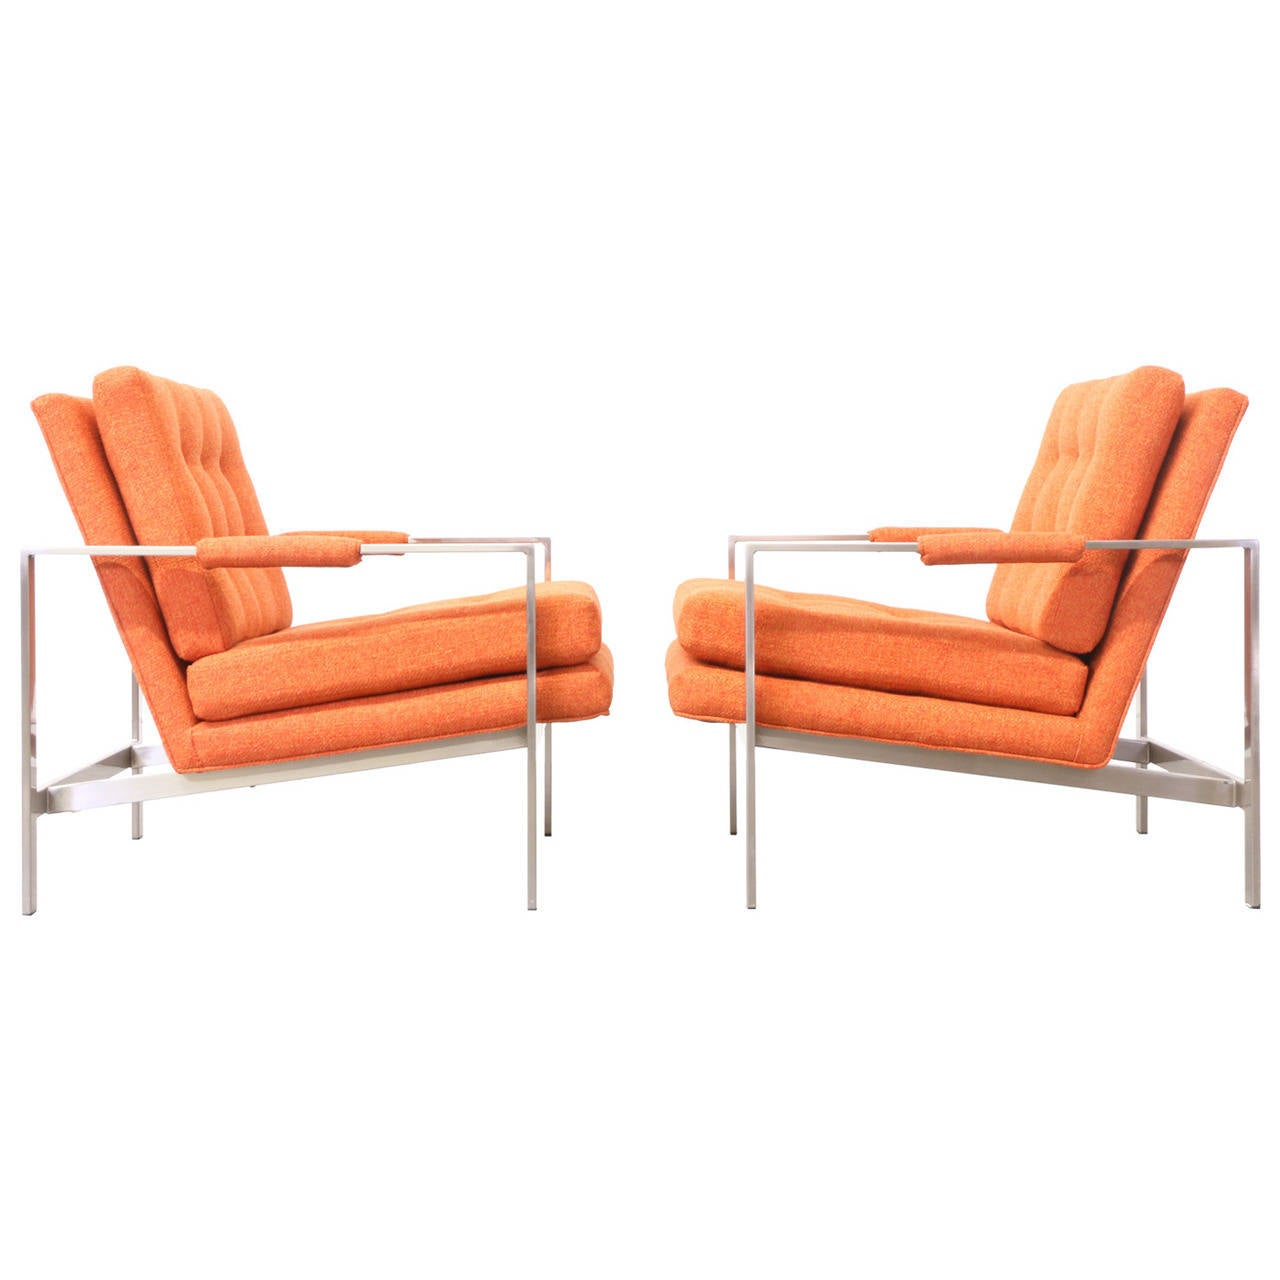 Milo Baughman Stainless Steel Lounge Chairs for Thayer Coggin at 1stdibs